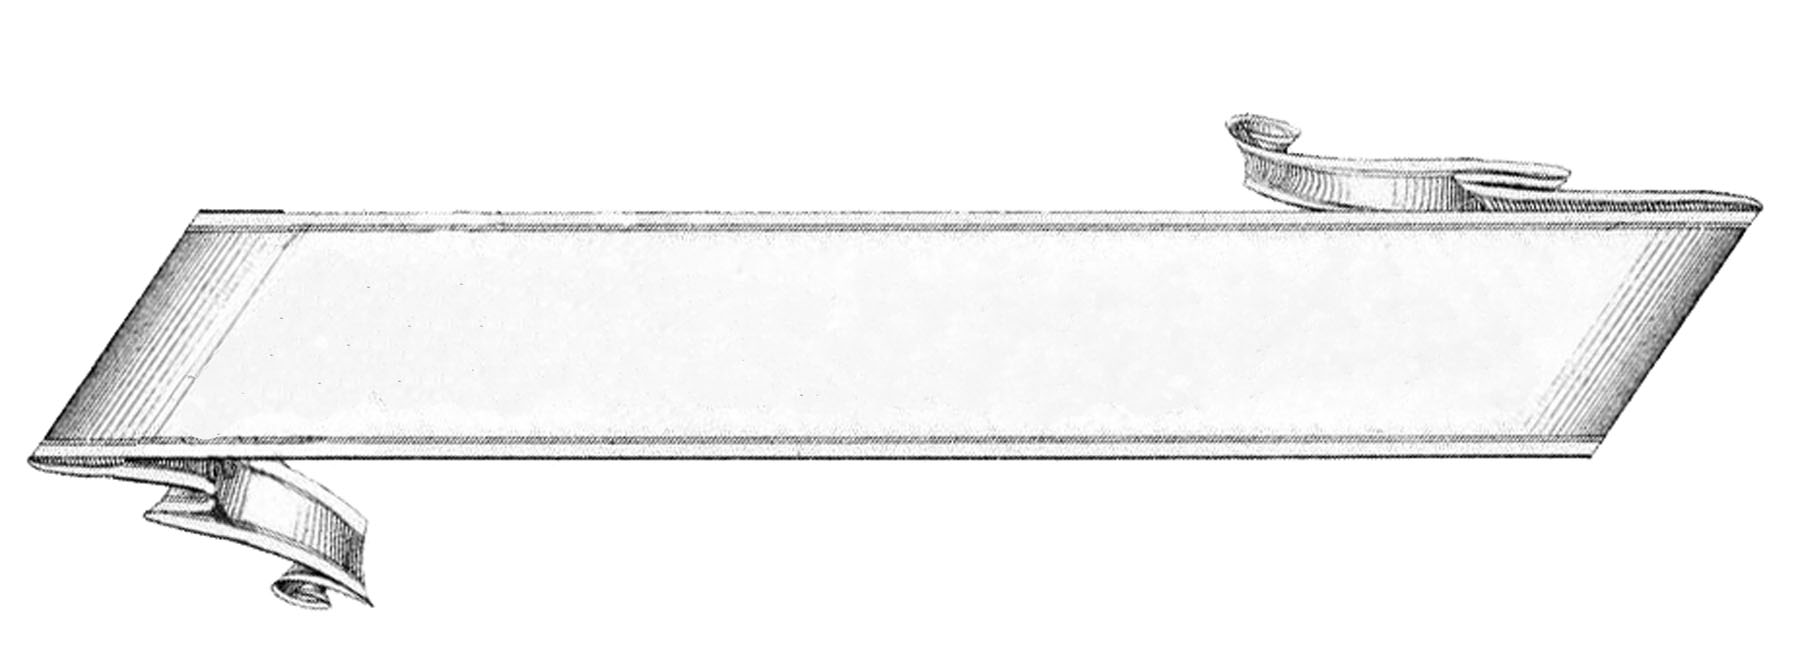 blank ribbons the. Banner clipart label